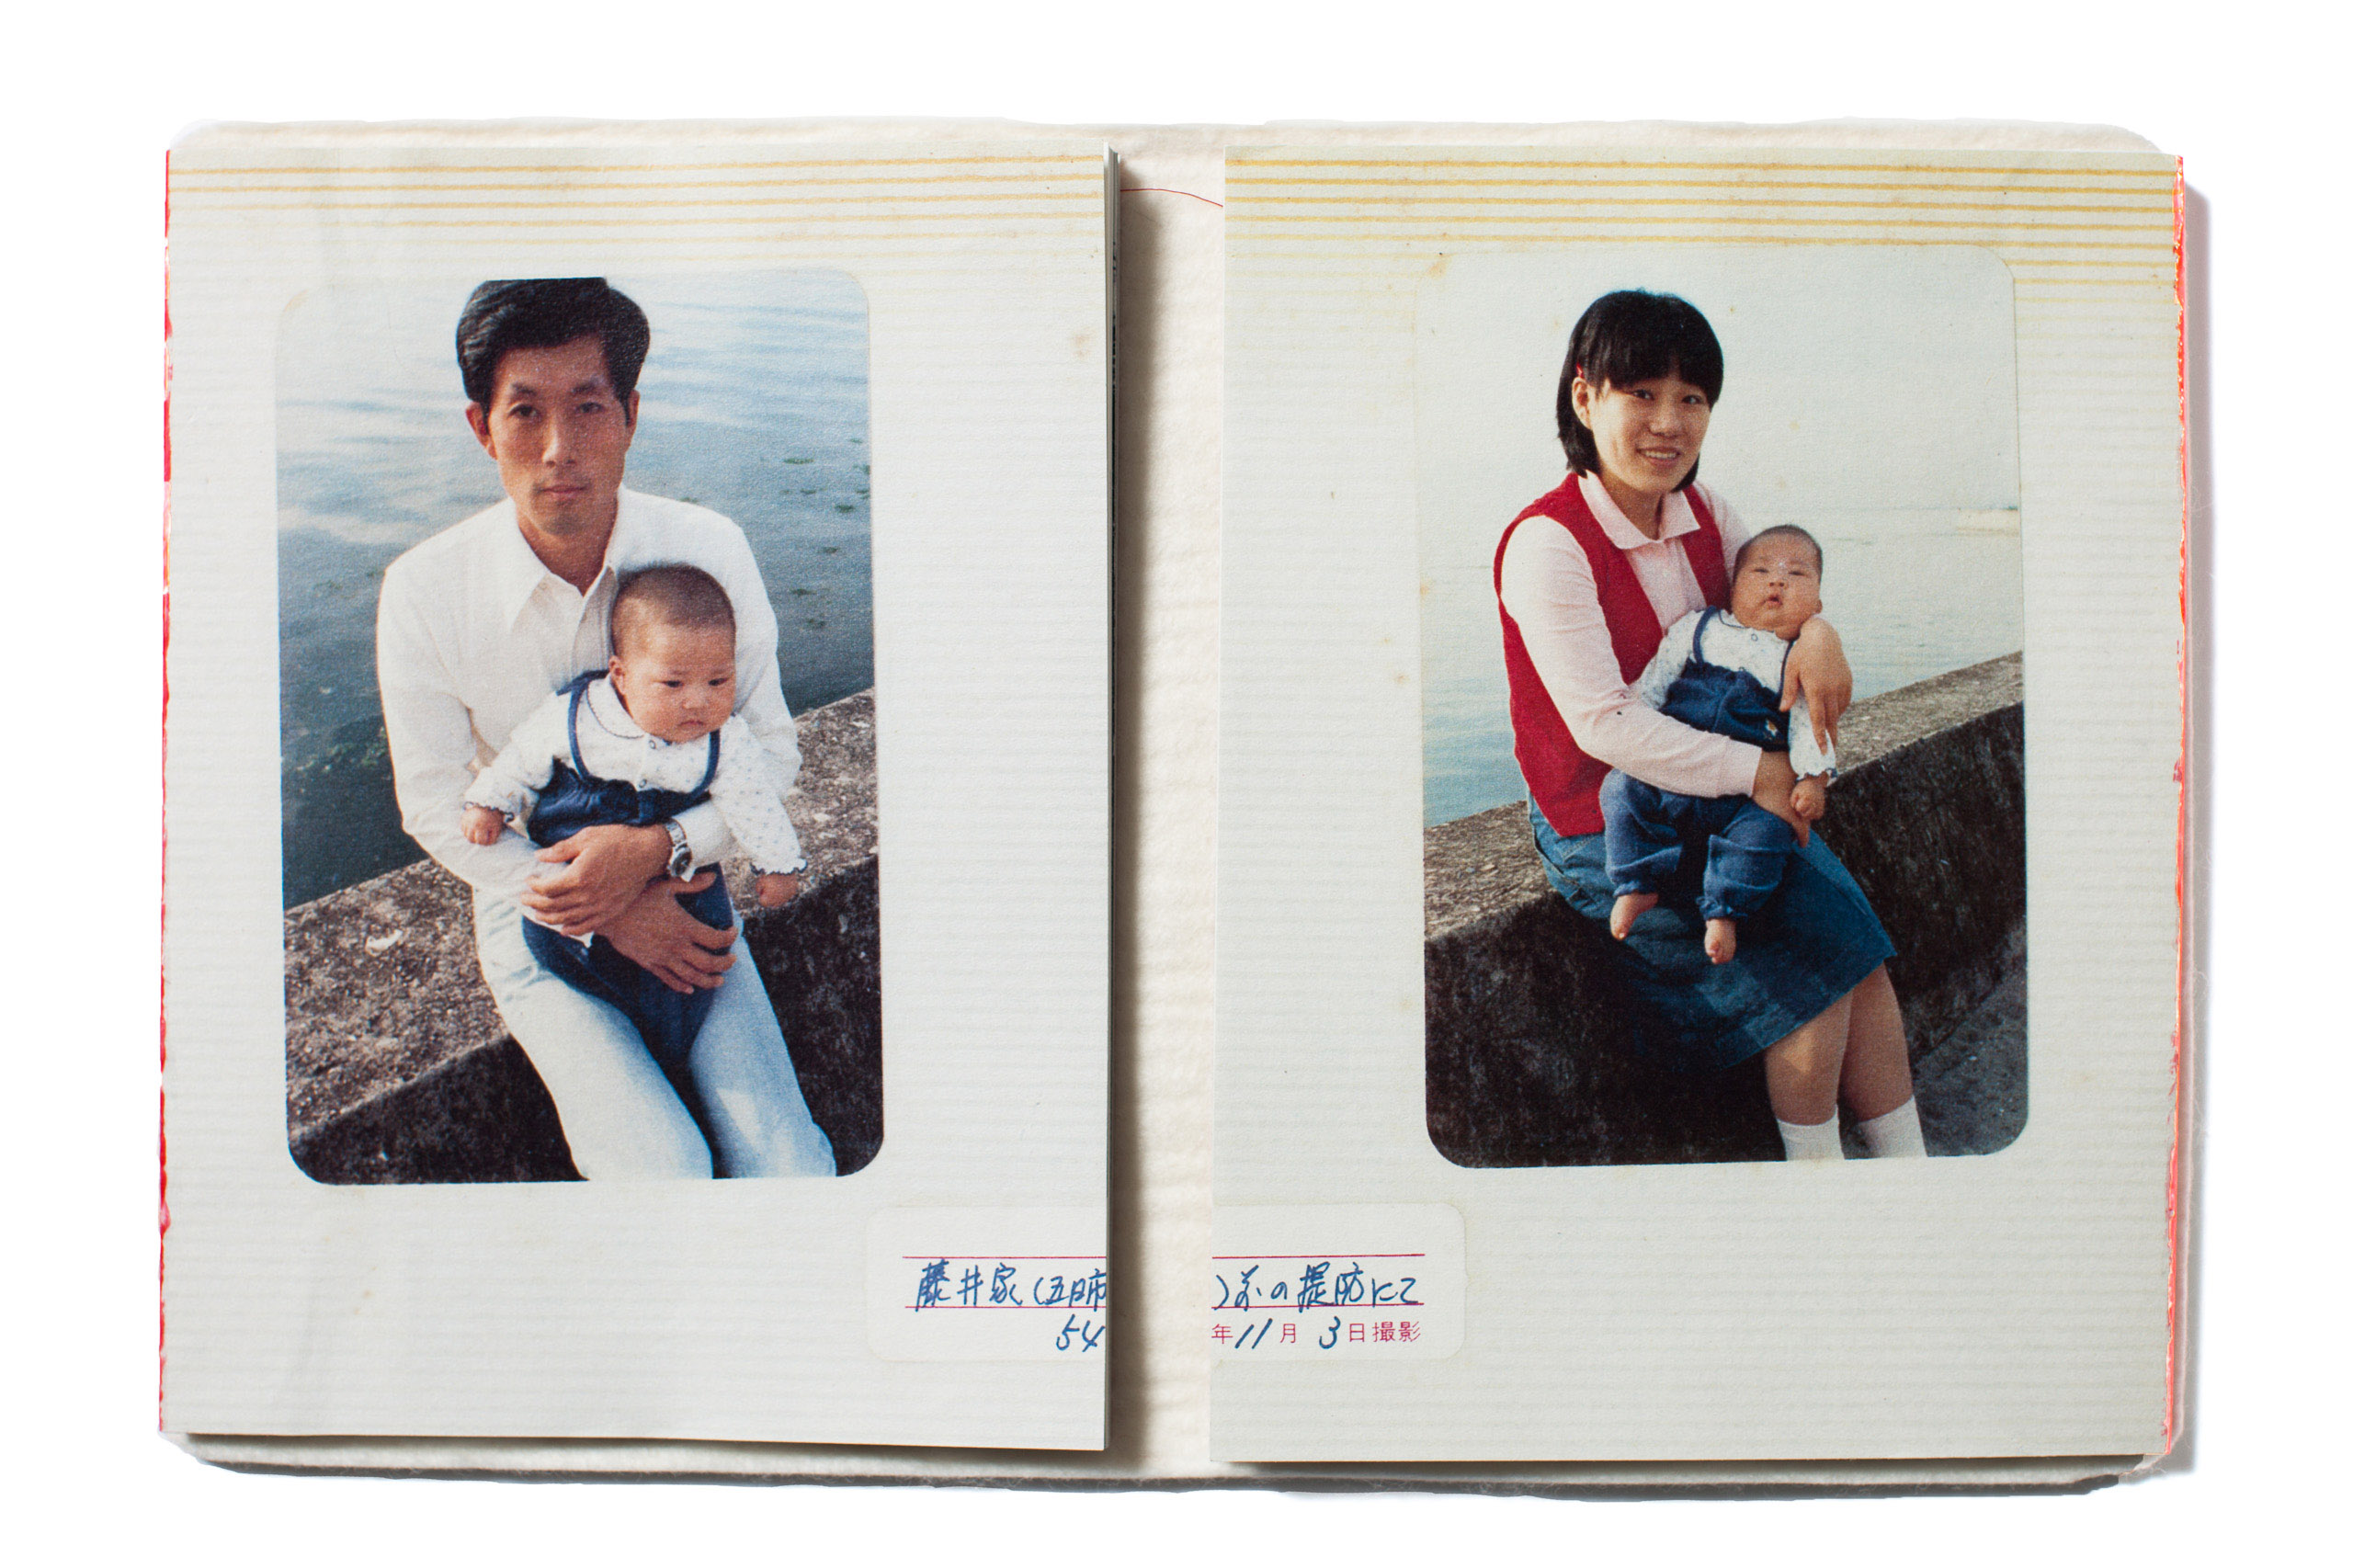 The split binding allows the reader to page through one side and then the other, but the powerfulness comes from pairing both halves together. In this delicate and personal family album, Yoshikatsu Fujii ties the memory of his family back together with the cultural metaphor of red string.                                                                - Larissa Leclair, Founder of the Indie Photobook Library